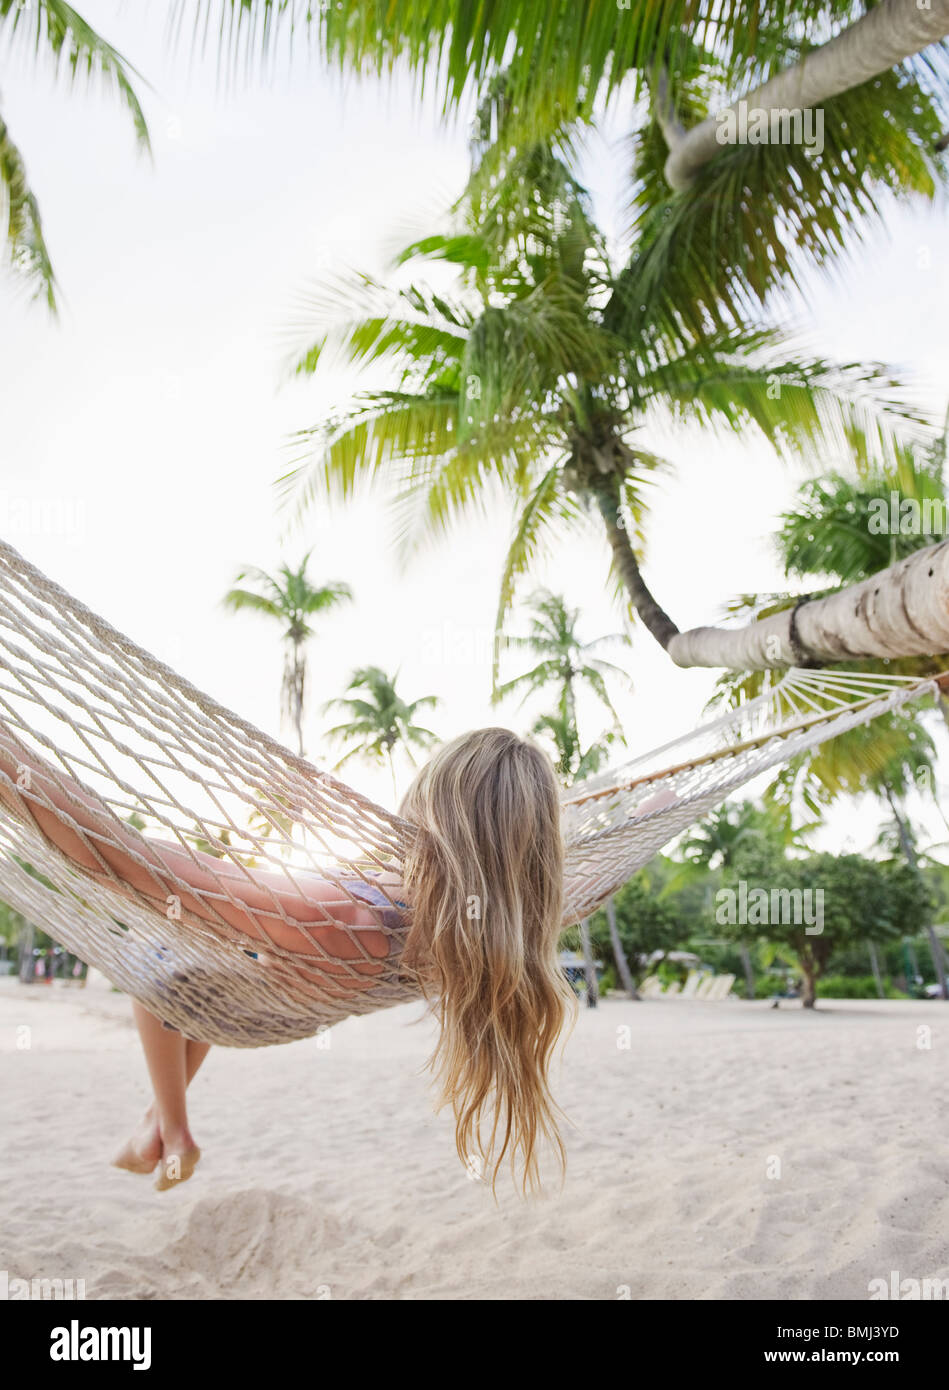 Blonde woman relaxing in hammock - Stock Image